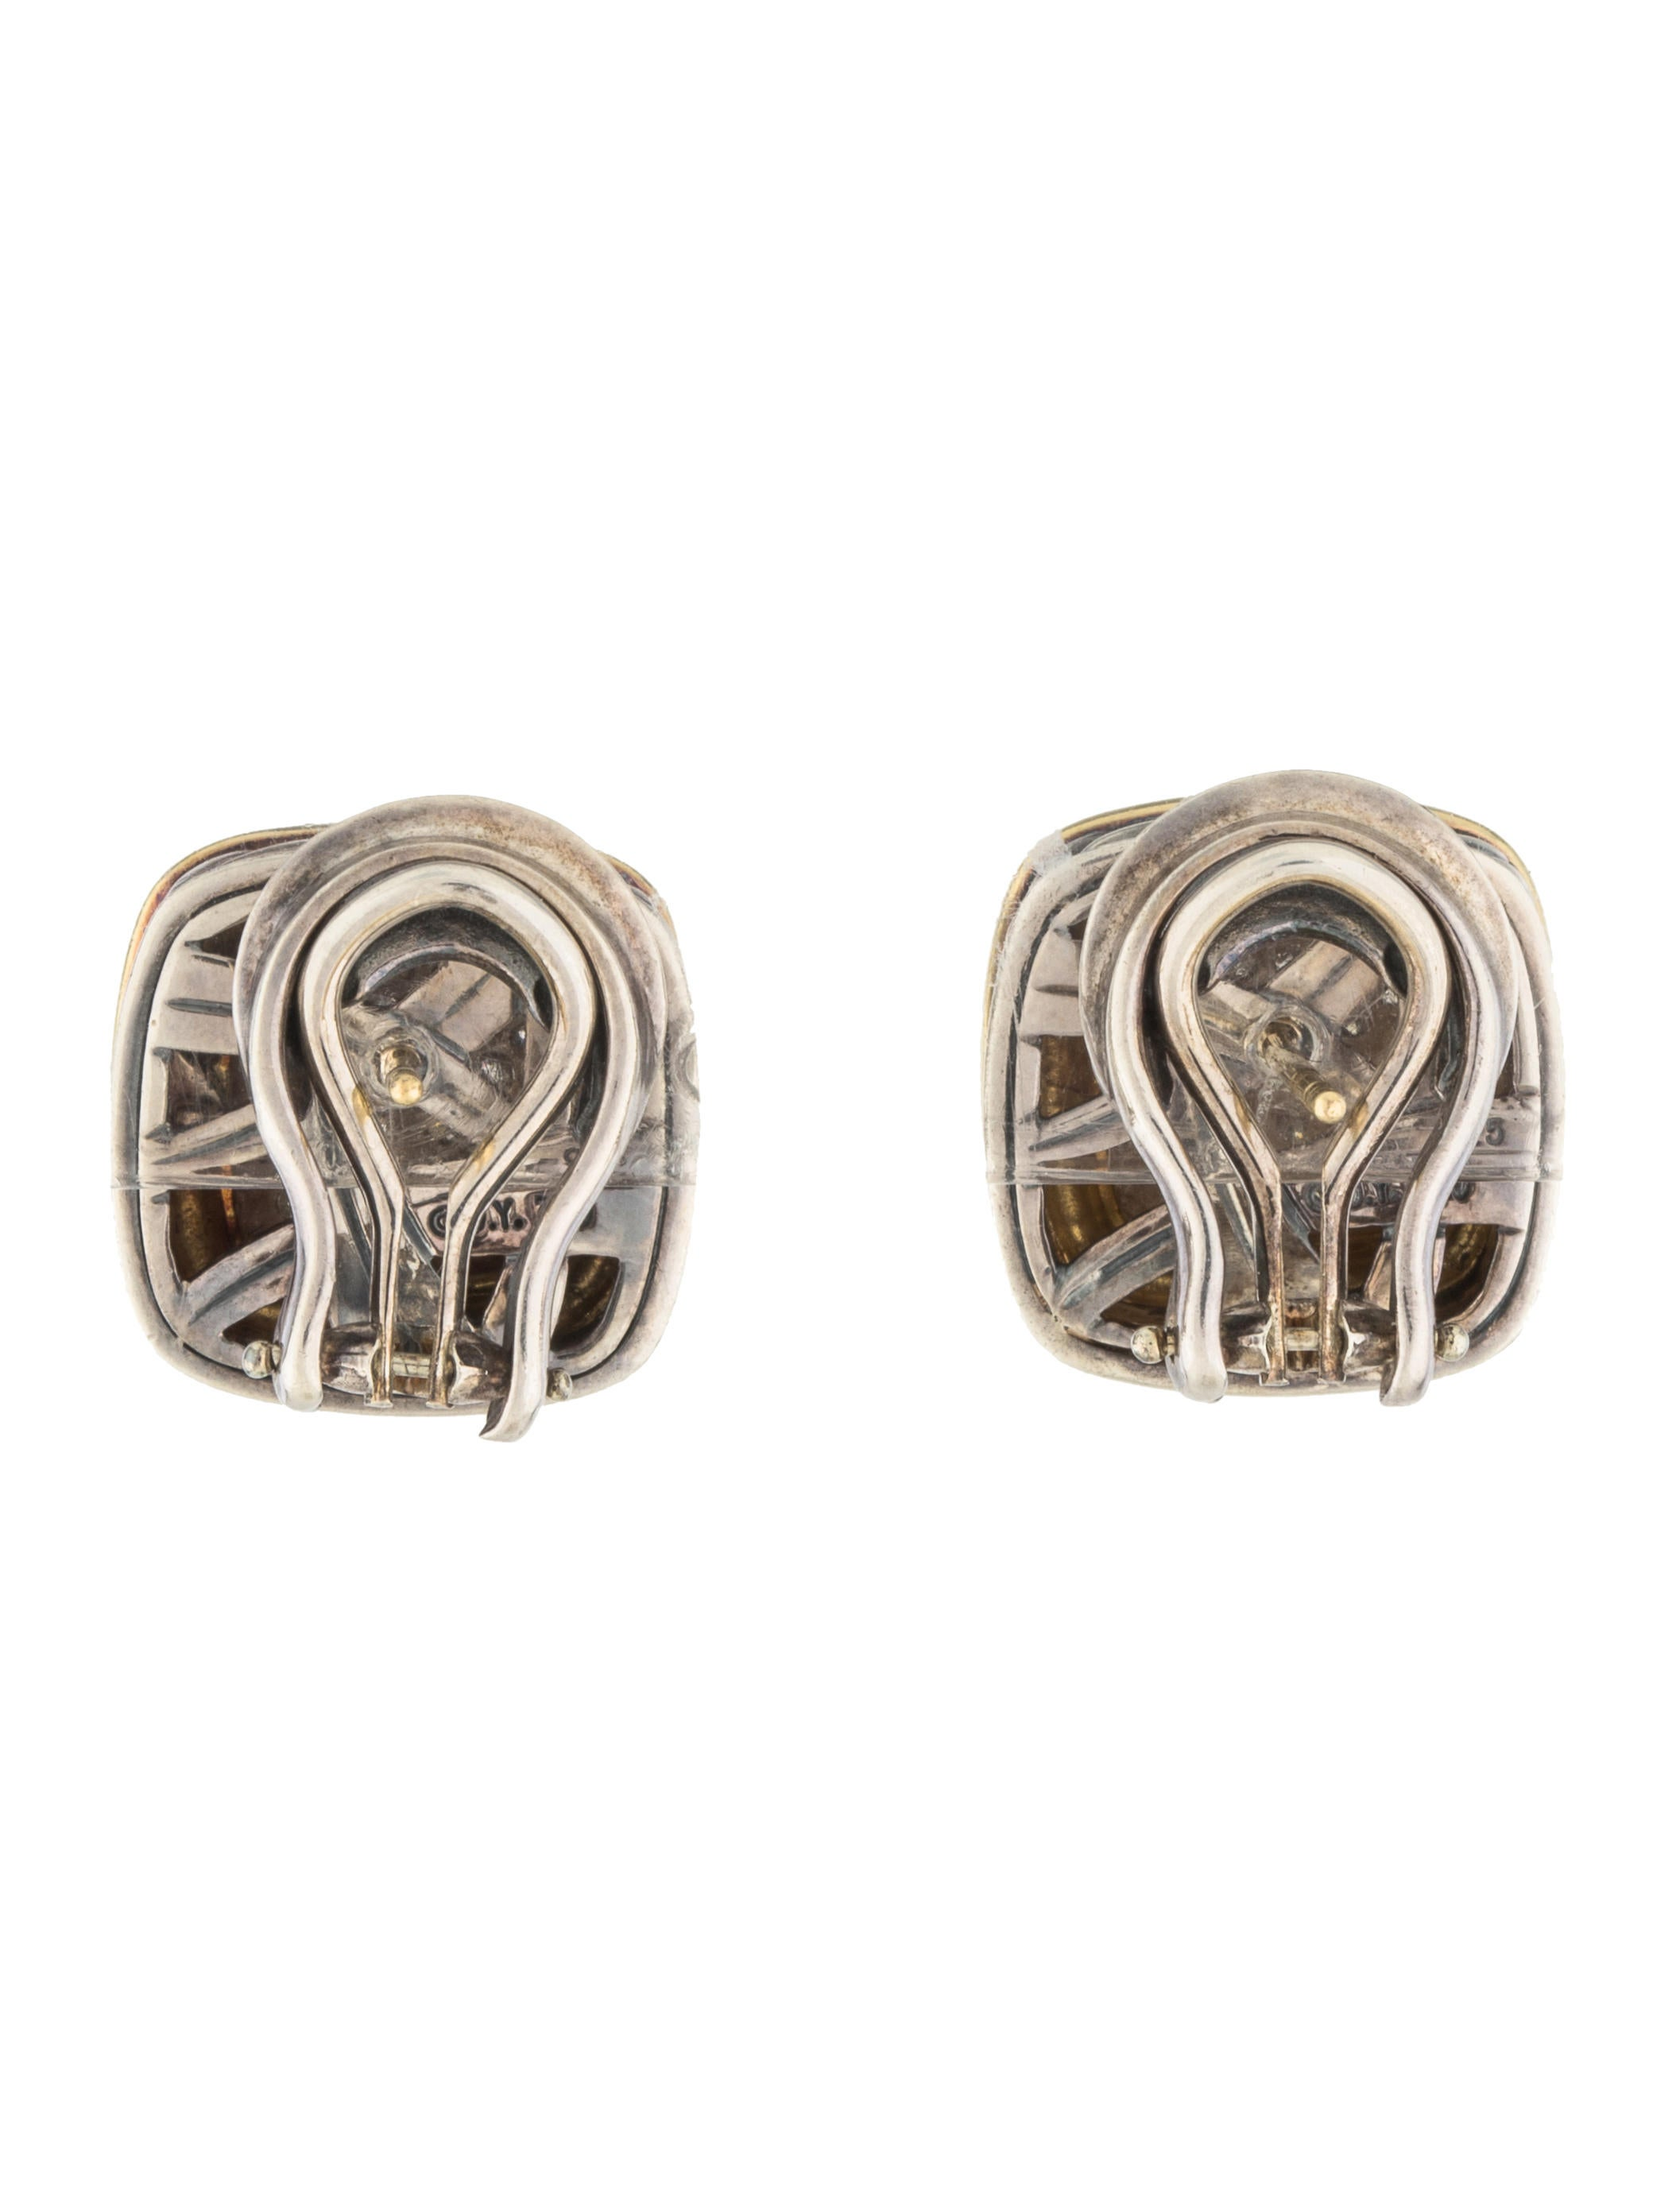 david yurman earrings sale david yurman earrings earrings dvy41907 the 5207